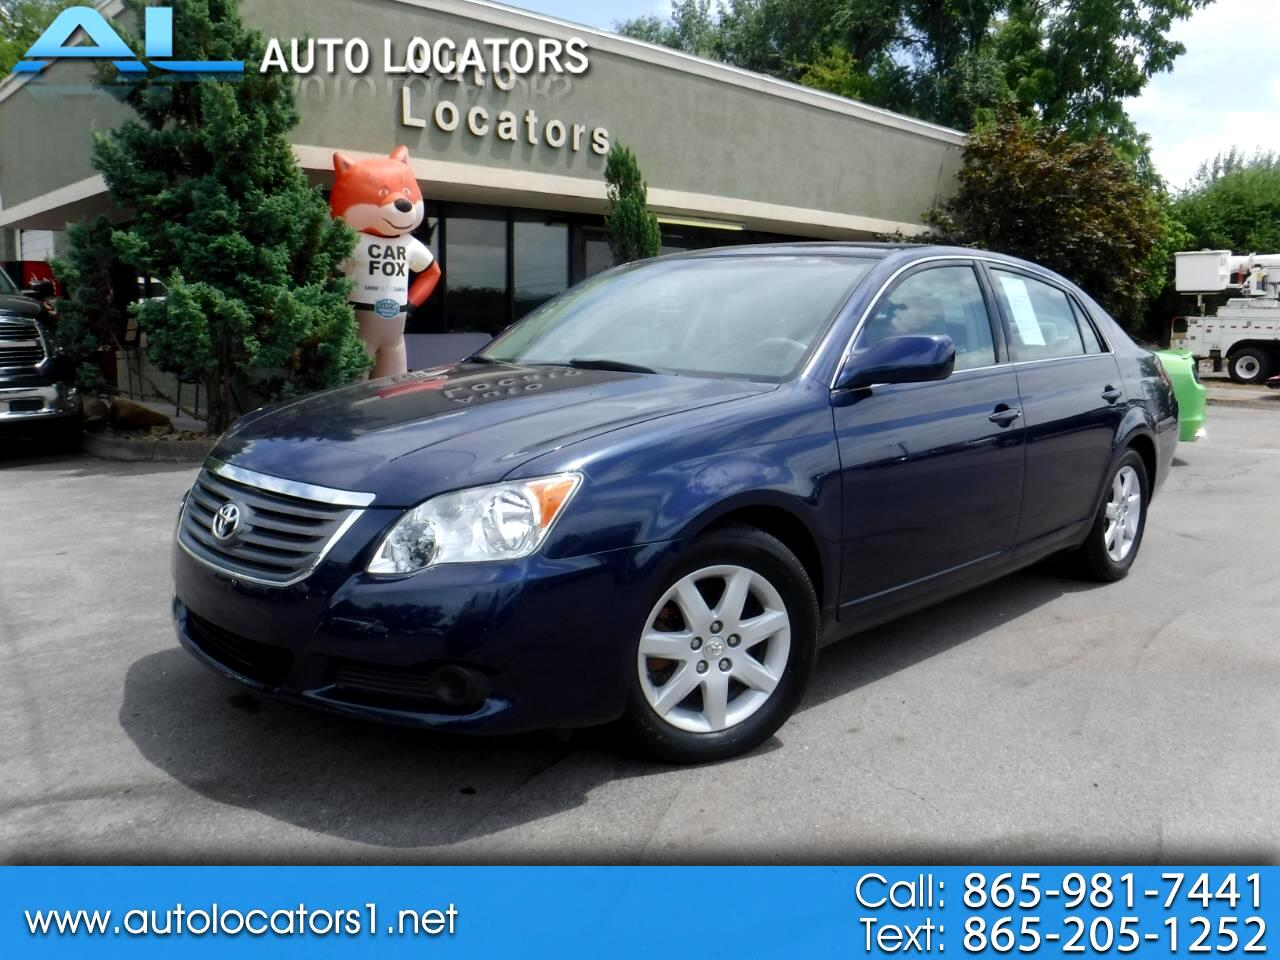 2008 Toyota Avalon 4dr Sdn XL (Natl)